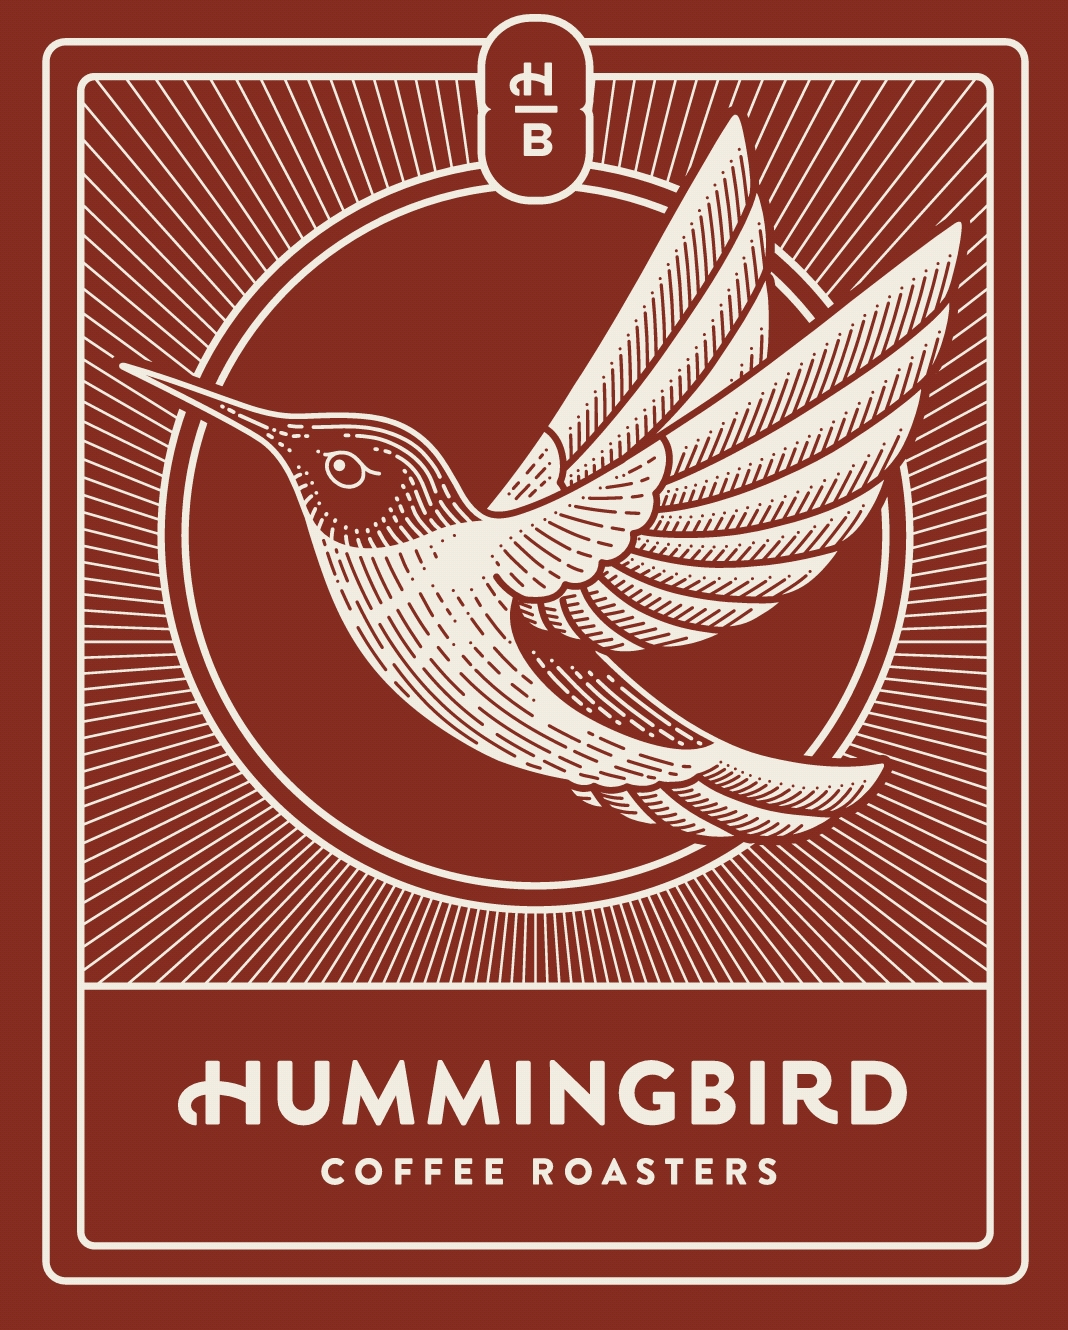 hummingbird-coffee.jpg